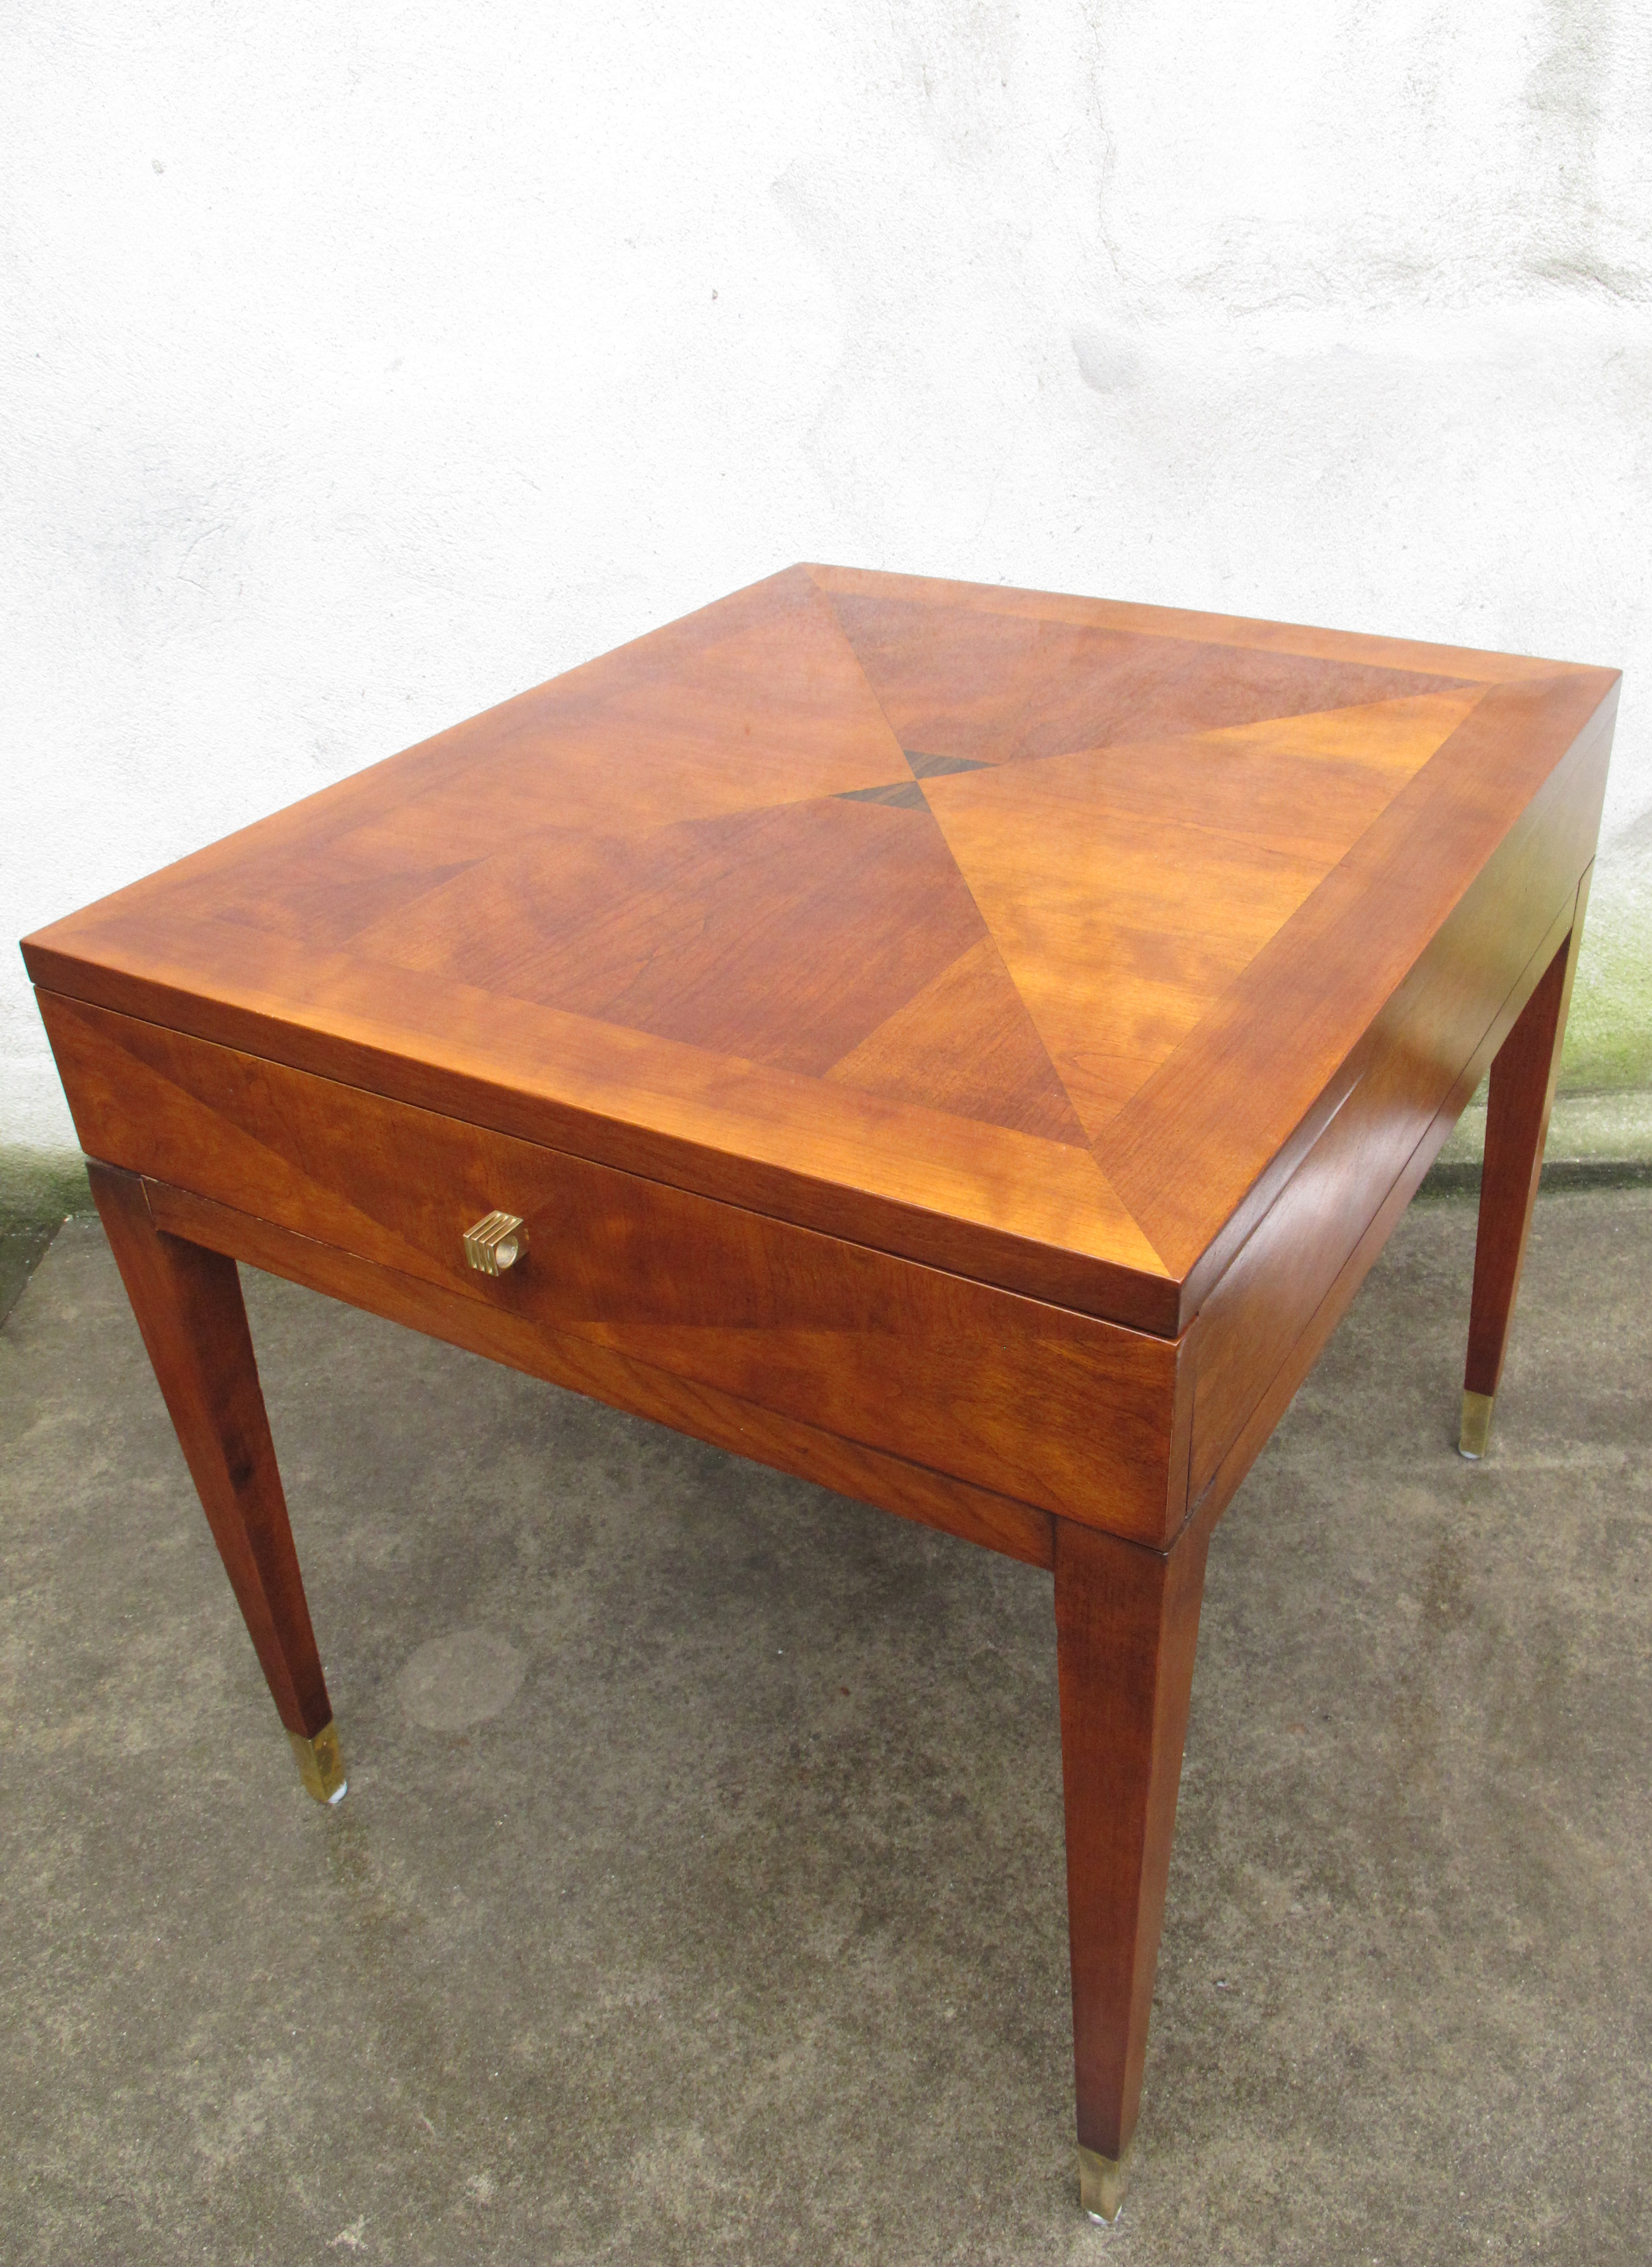 HENREDON SCENE 4 MID CENTURY AND DECO STYLE END TABLE